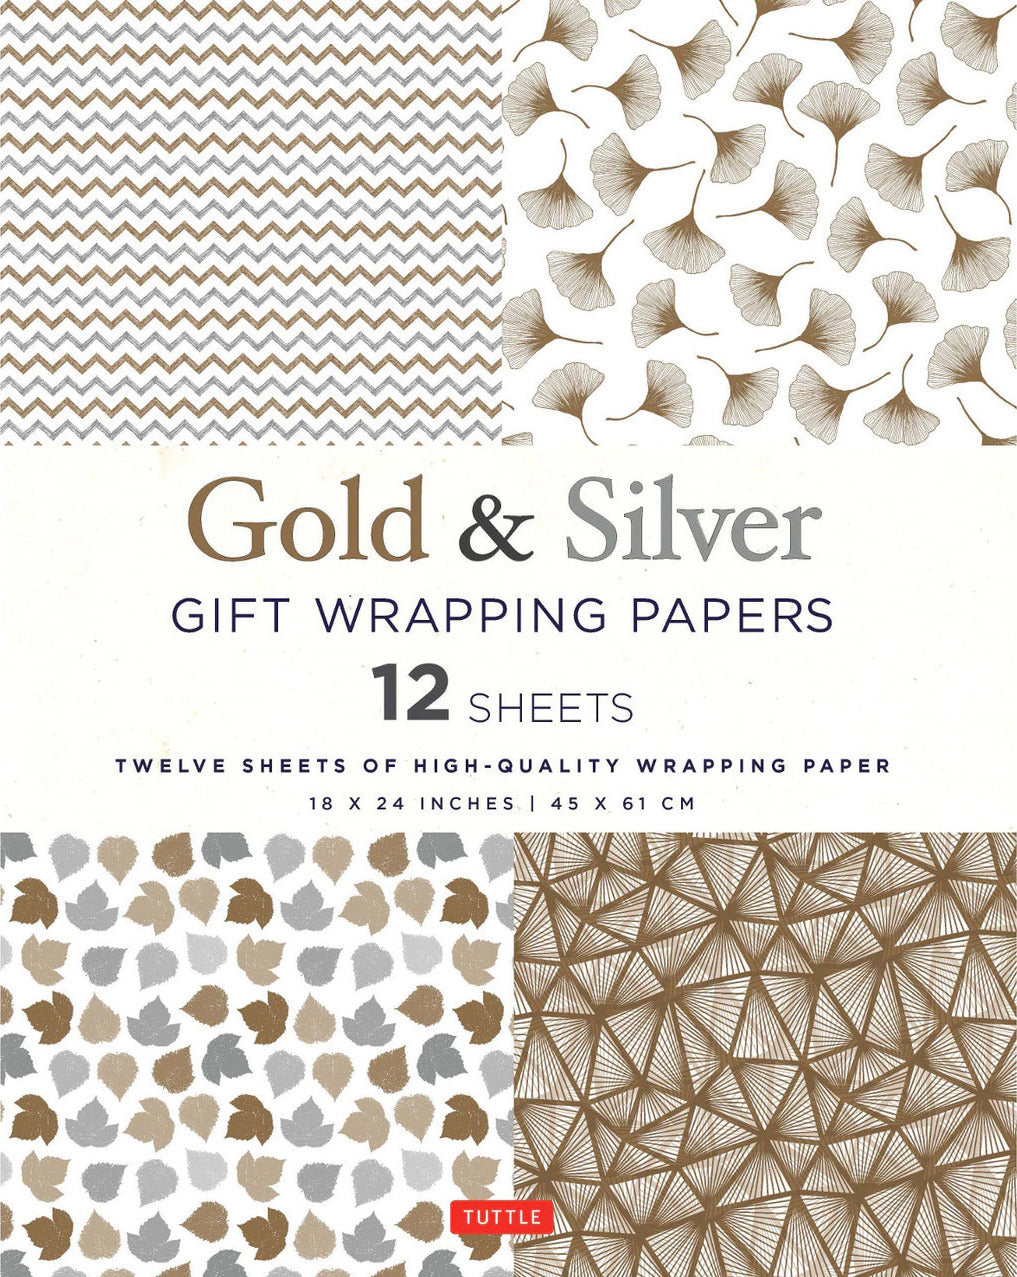 Gold & Silver Gift Wrapping Paper